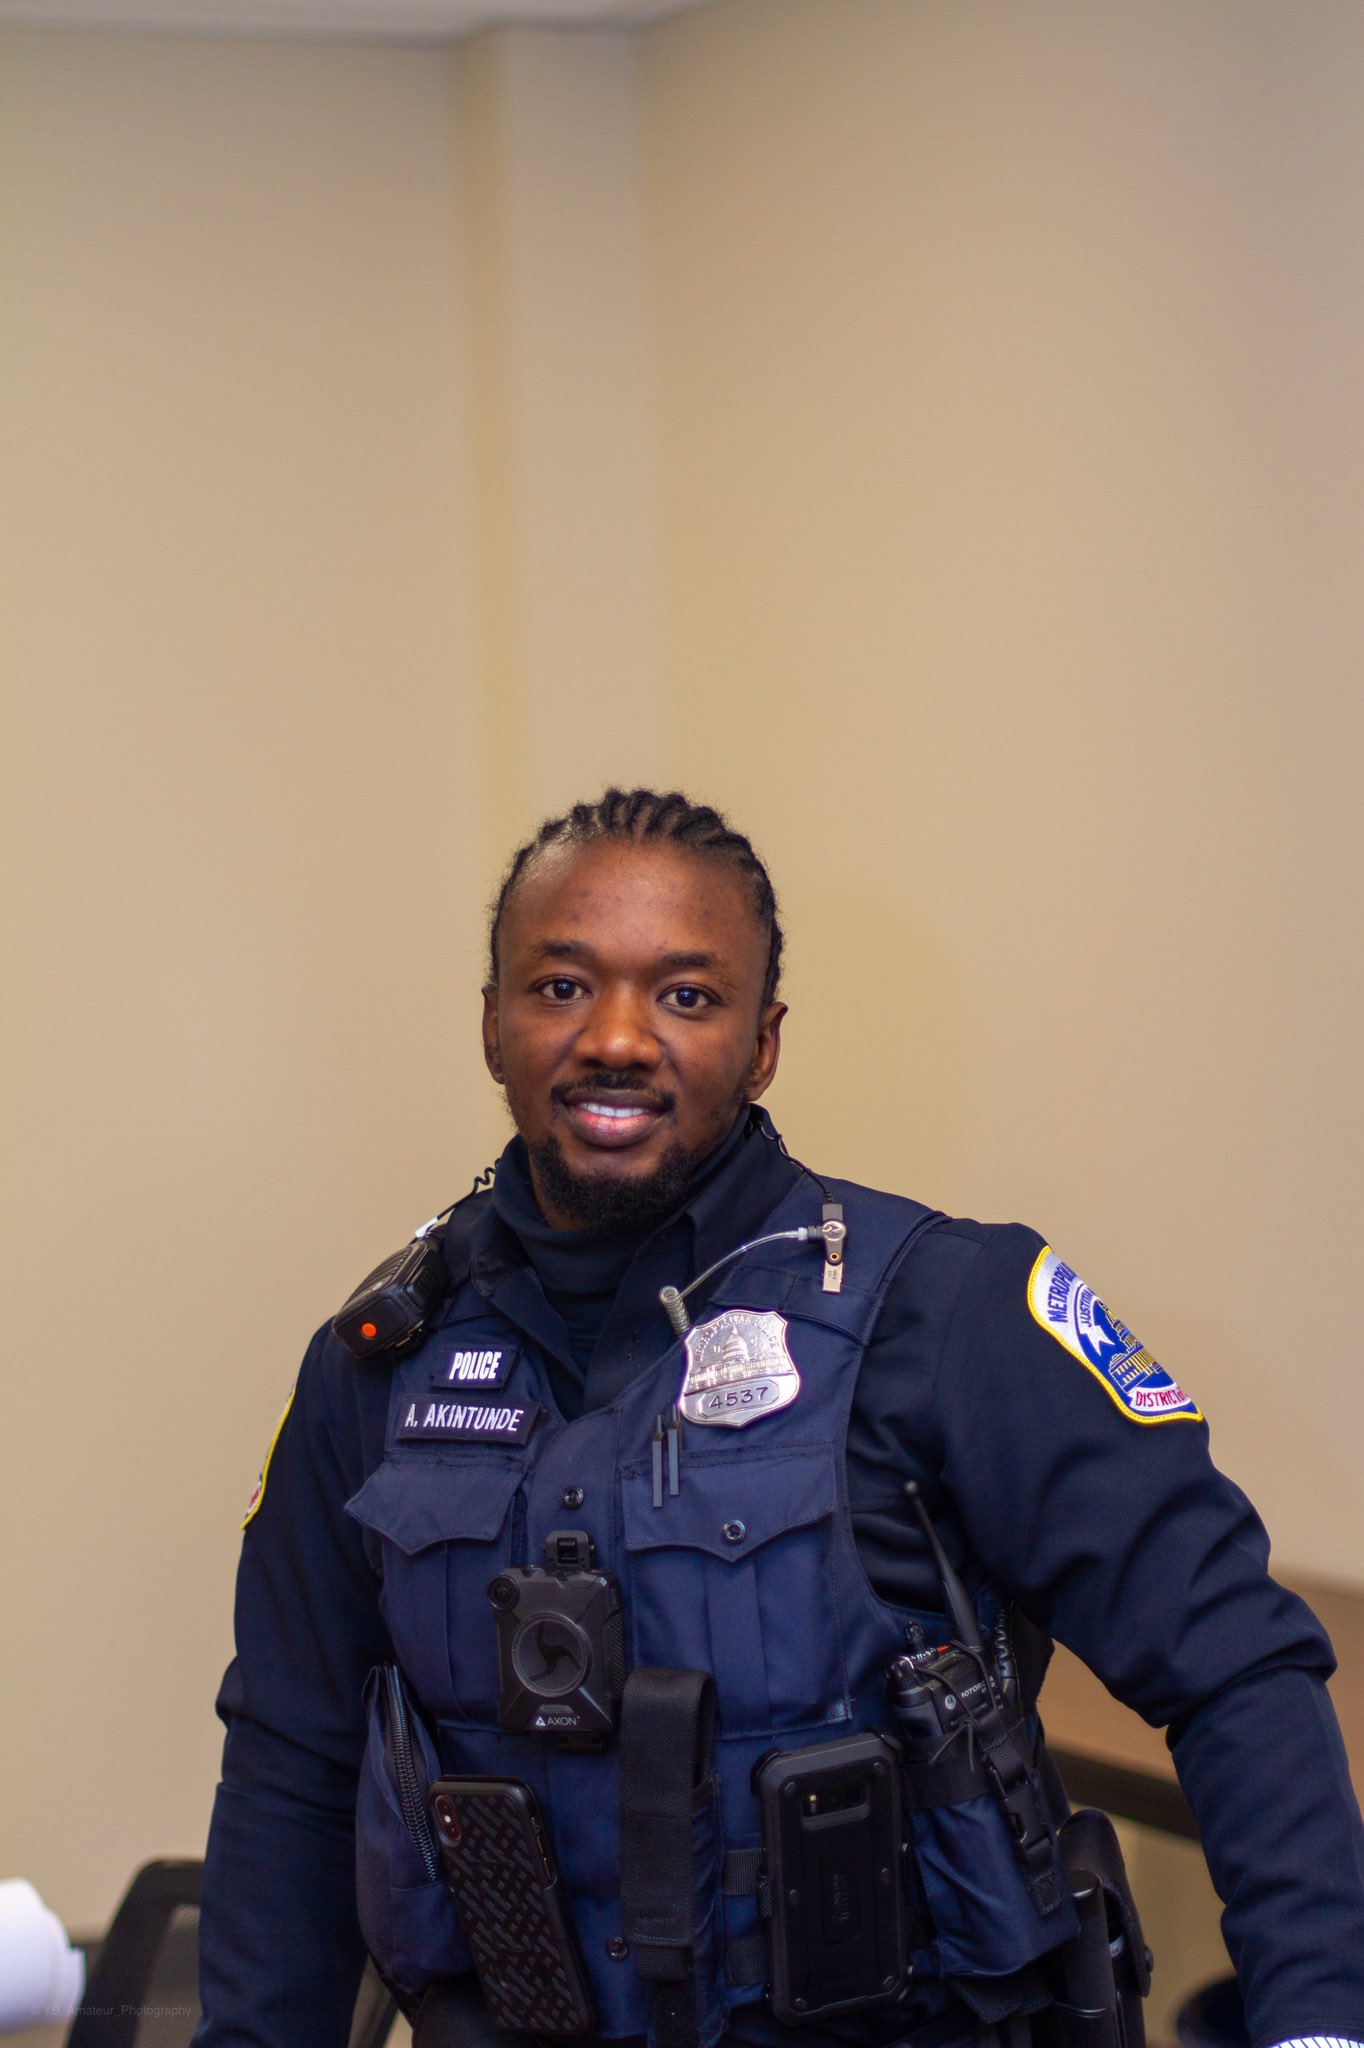 """4 days in Nigeria & I have already been profiled as a criminal by the Nigerian police force because I have braids"" – Washington DC Police officer laments"